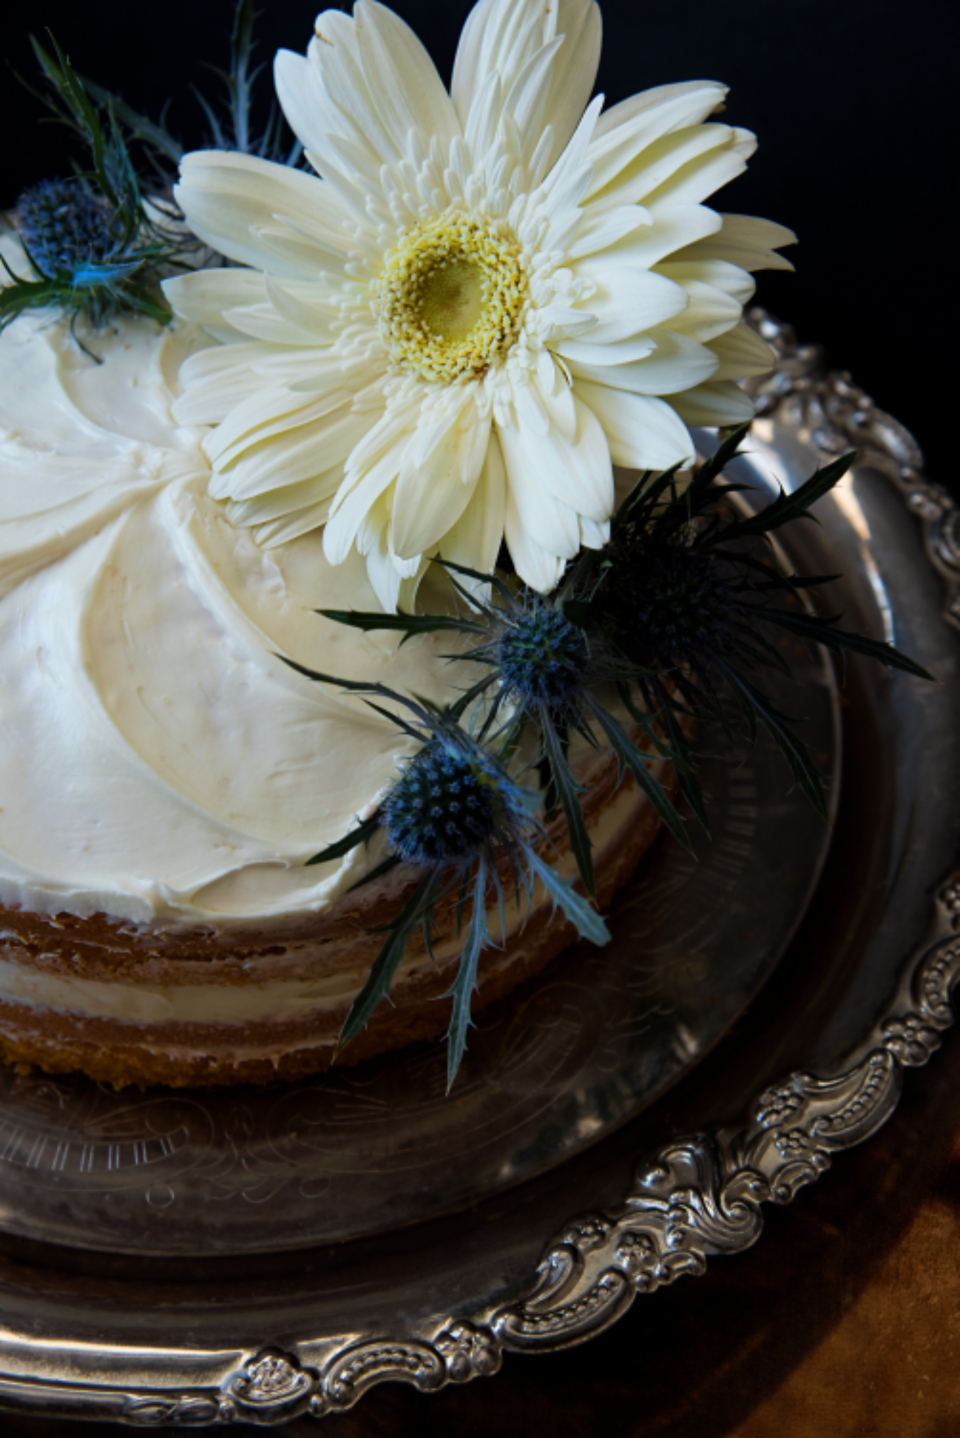 white cake flowers dessert tasty bakery baking bake tray silver food